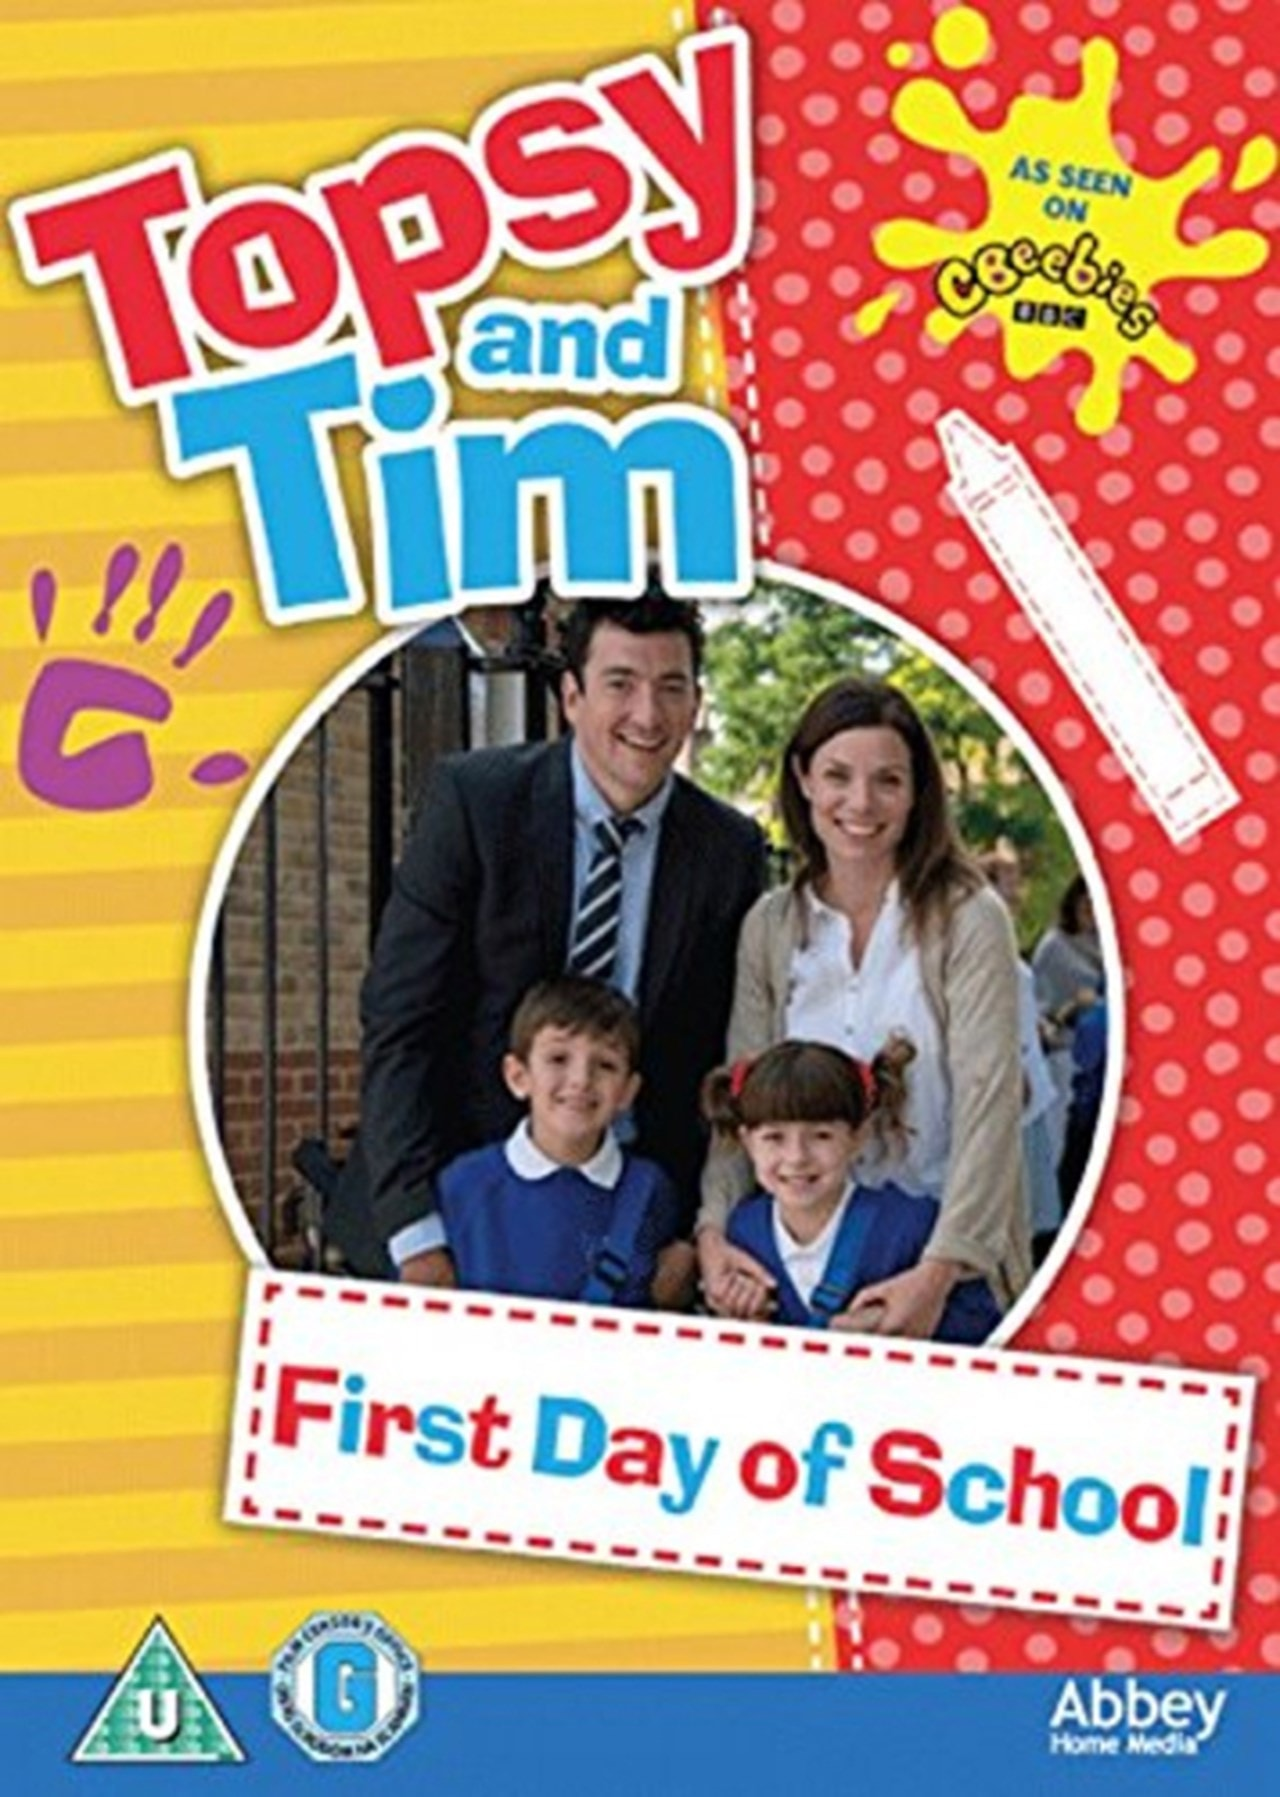 Topsy and Tim: First Day of School - 1